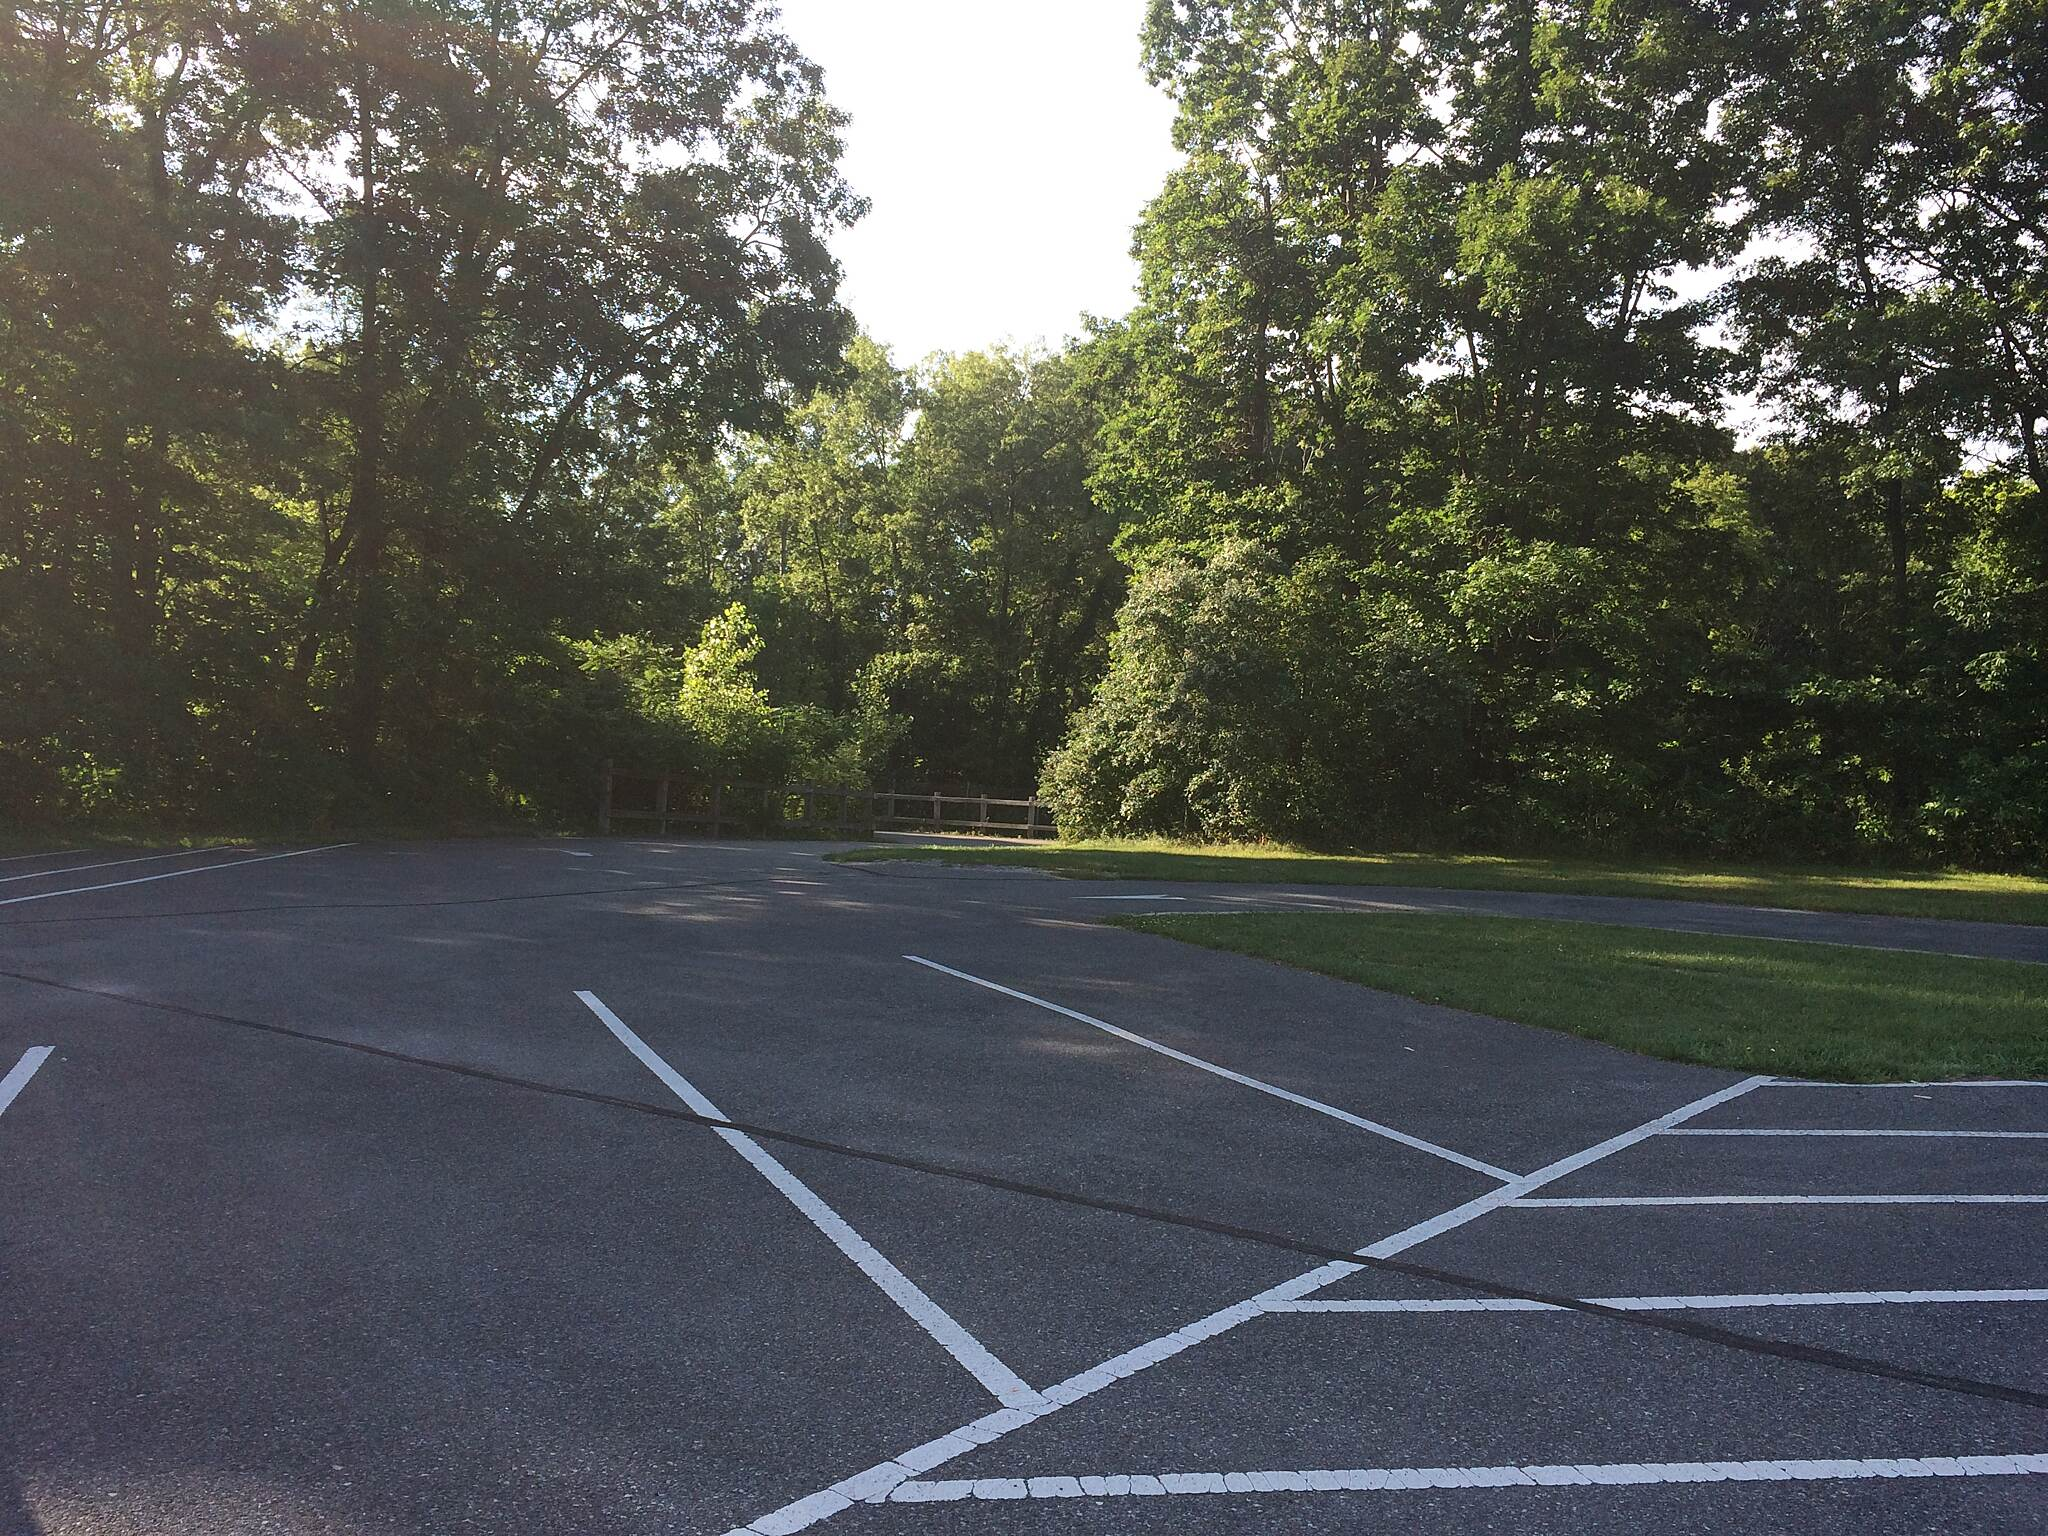 Iron Horse Heritage Trail Parking Parking also is for a park, soccer fields and restrooms